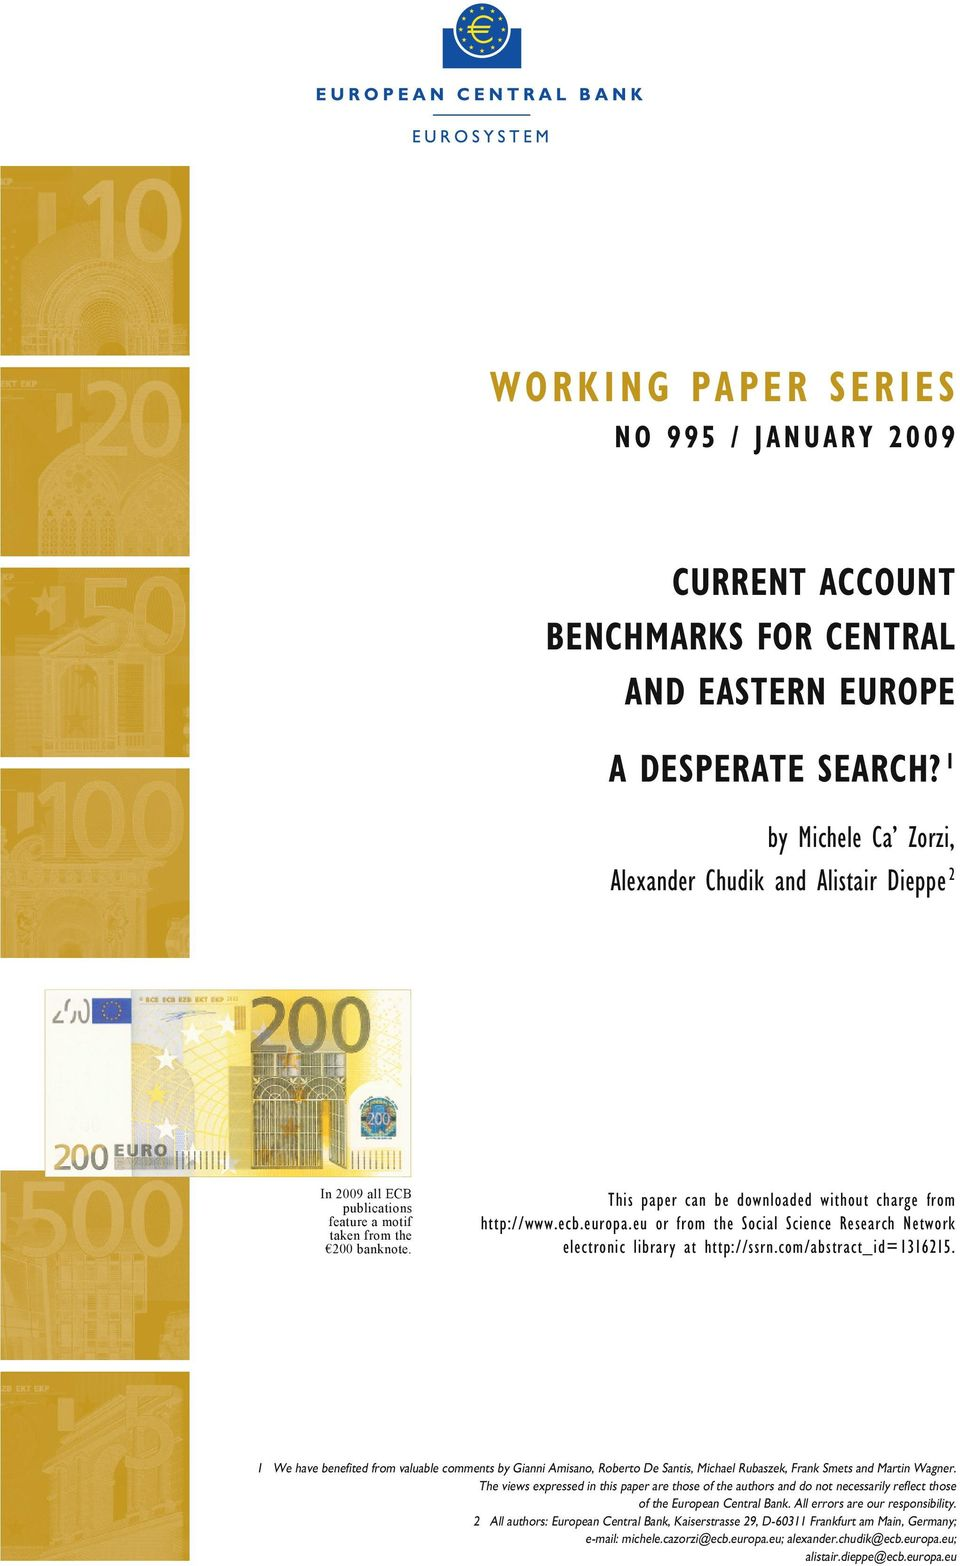 europa.eu or from the Social Science Research Network electronic library at http://ssrn.com/abstract_id=1316215.